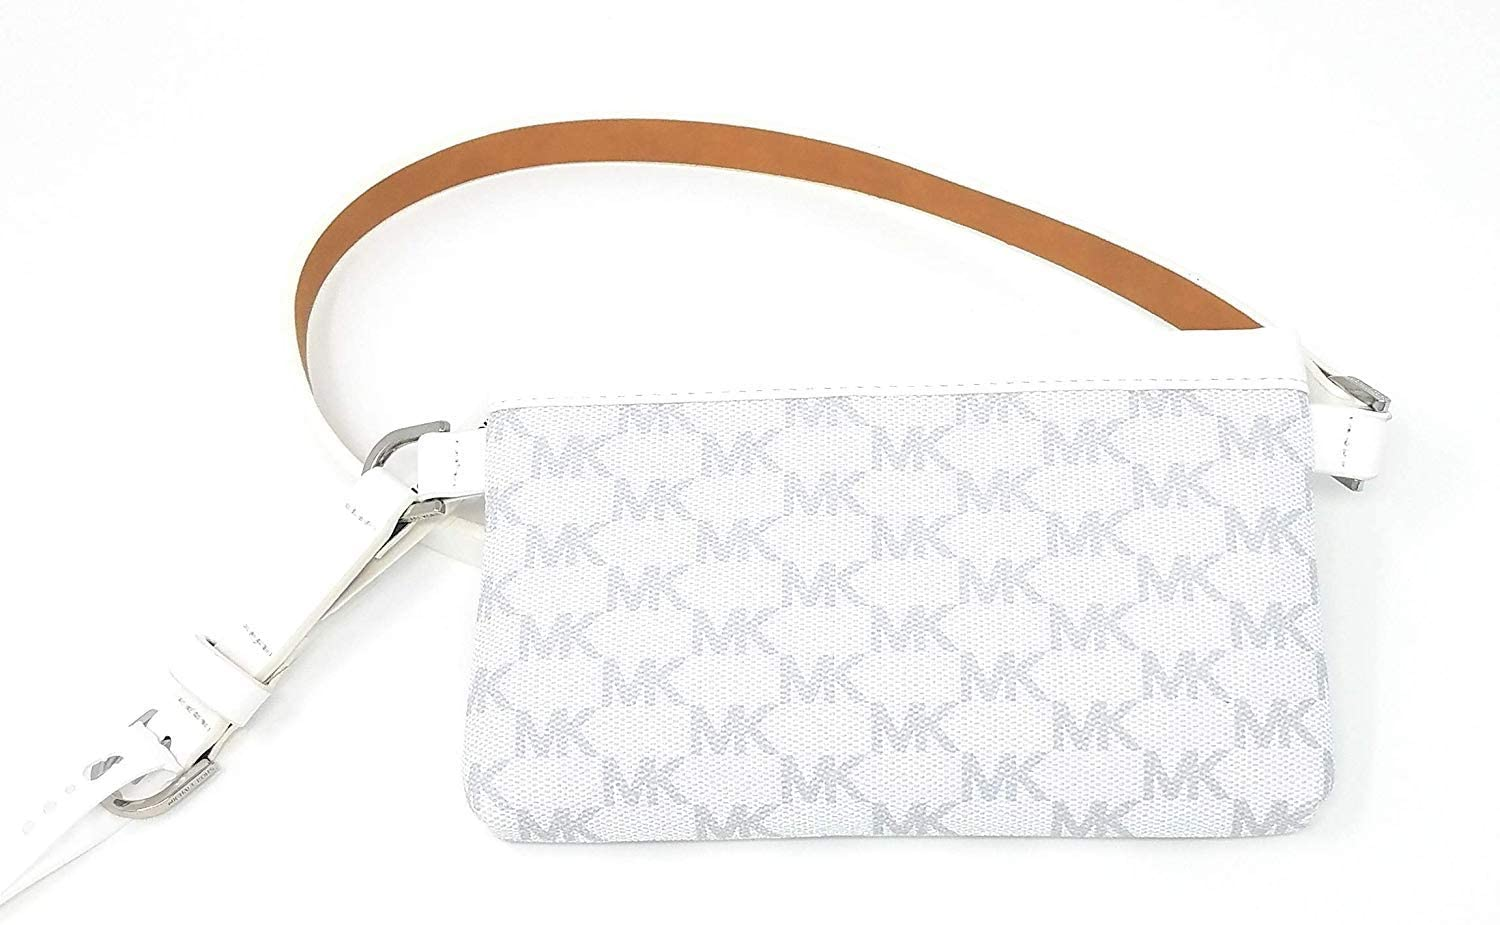 Michael Kors Leather Fanny Pack/Belt Bag, White/Grey (Medium)